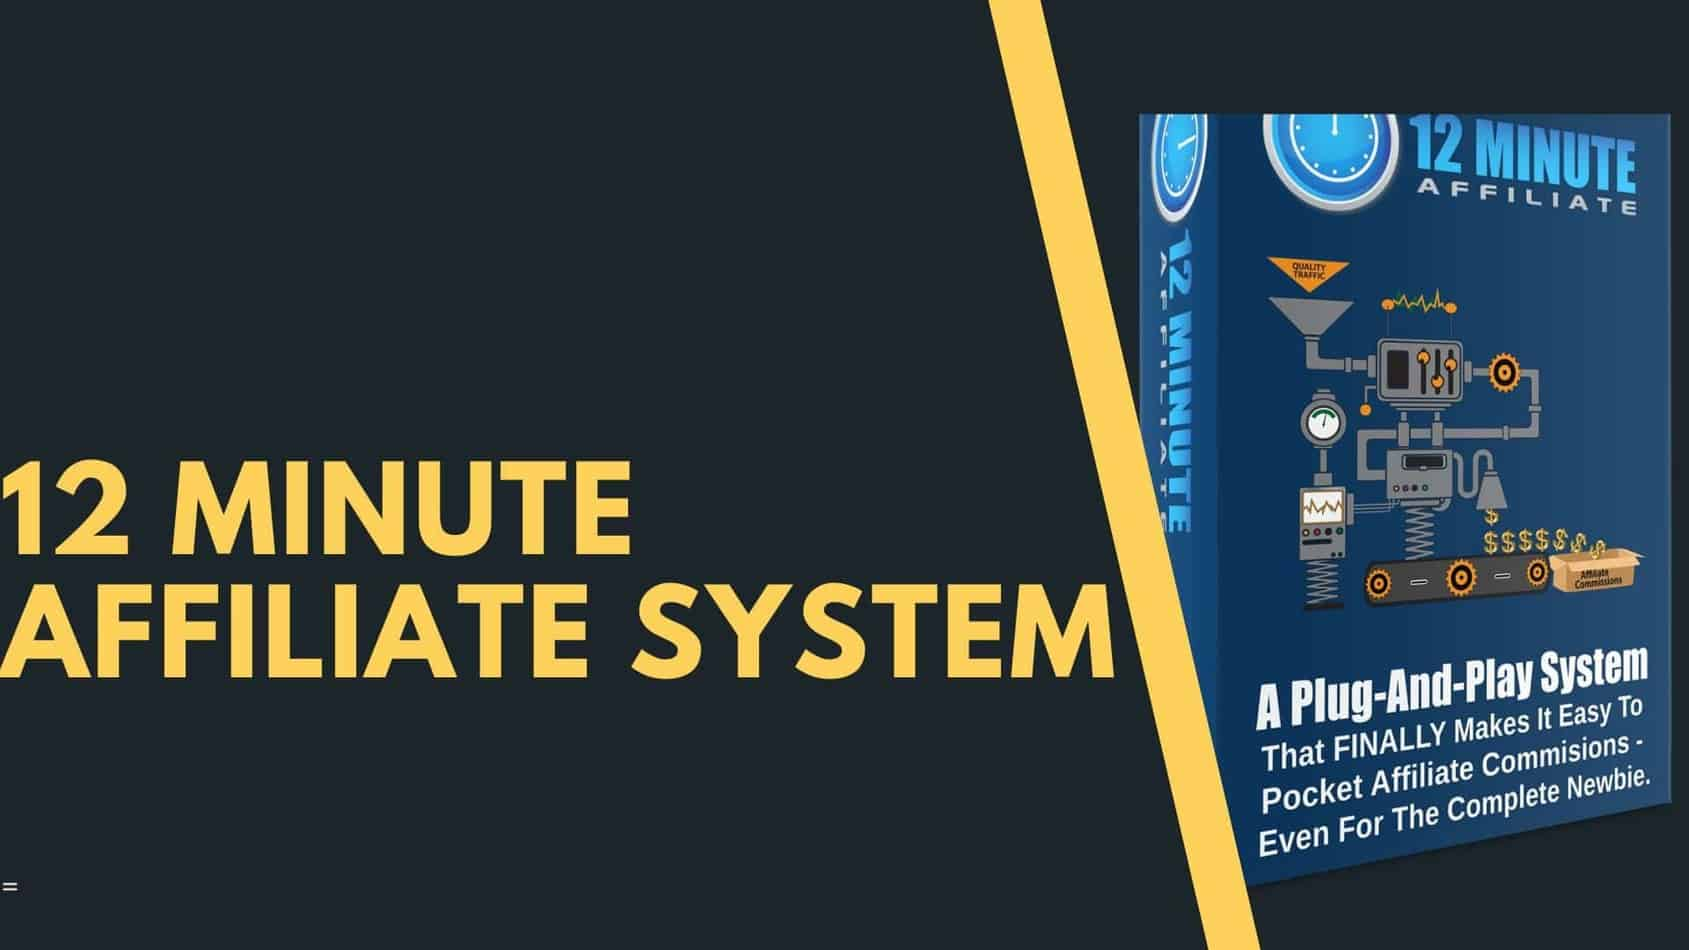 Buy 12 Minute Affiliate System Online Voucher Code Printable 80